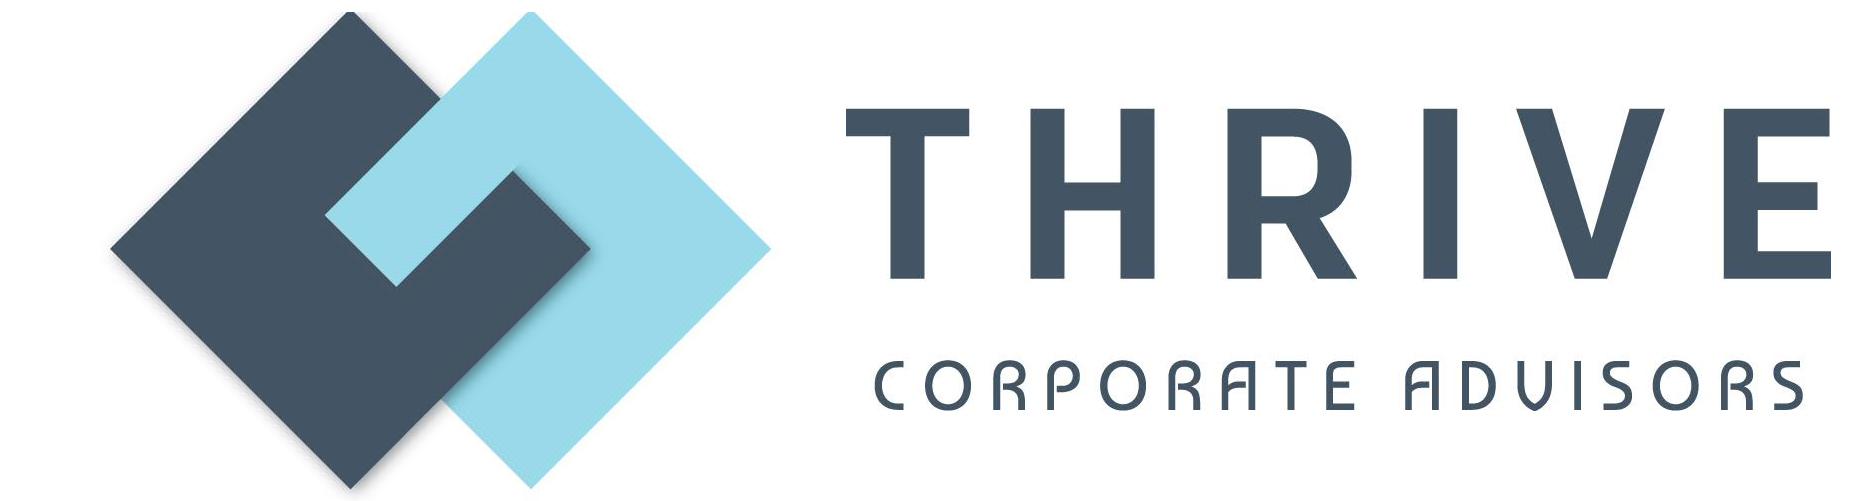 Thrive Corporate Advisors